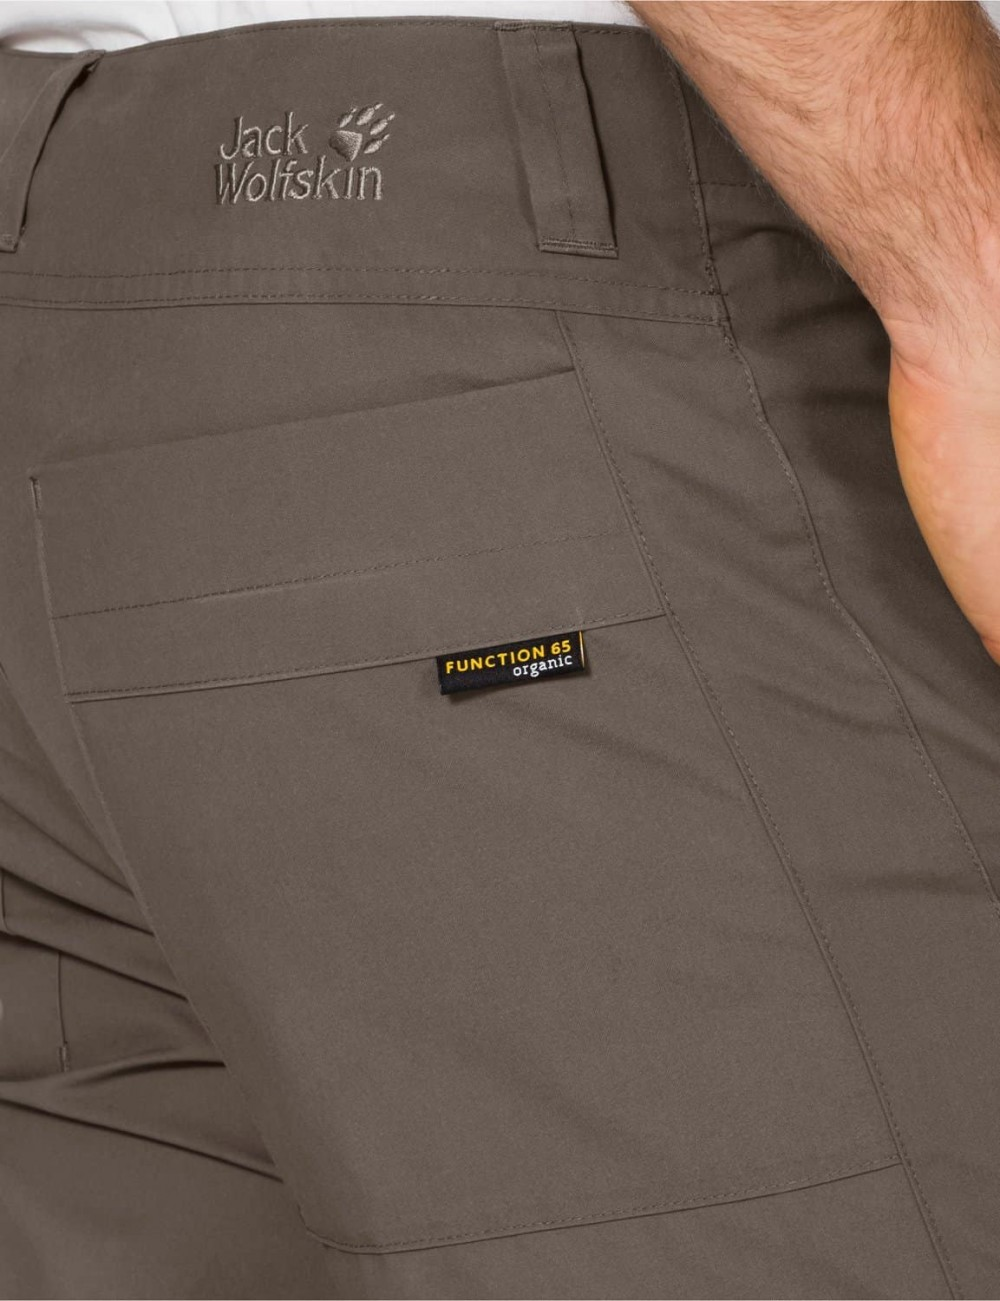 Штаны JACK WOLFSKIN North evo pants (размер 50/L) - 2